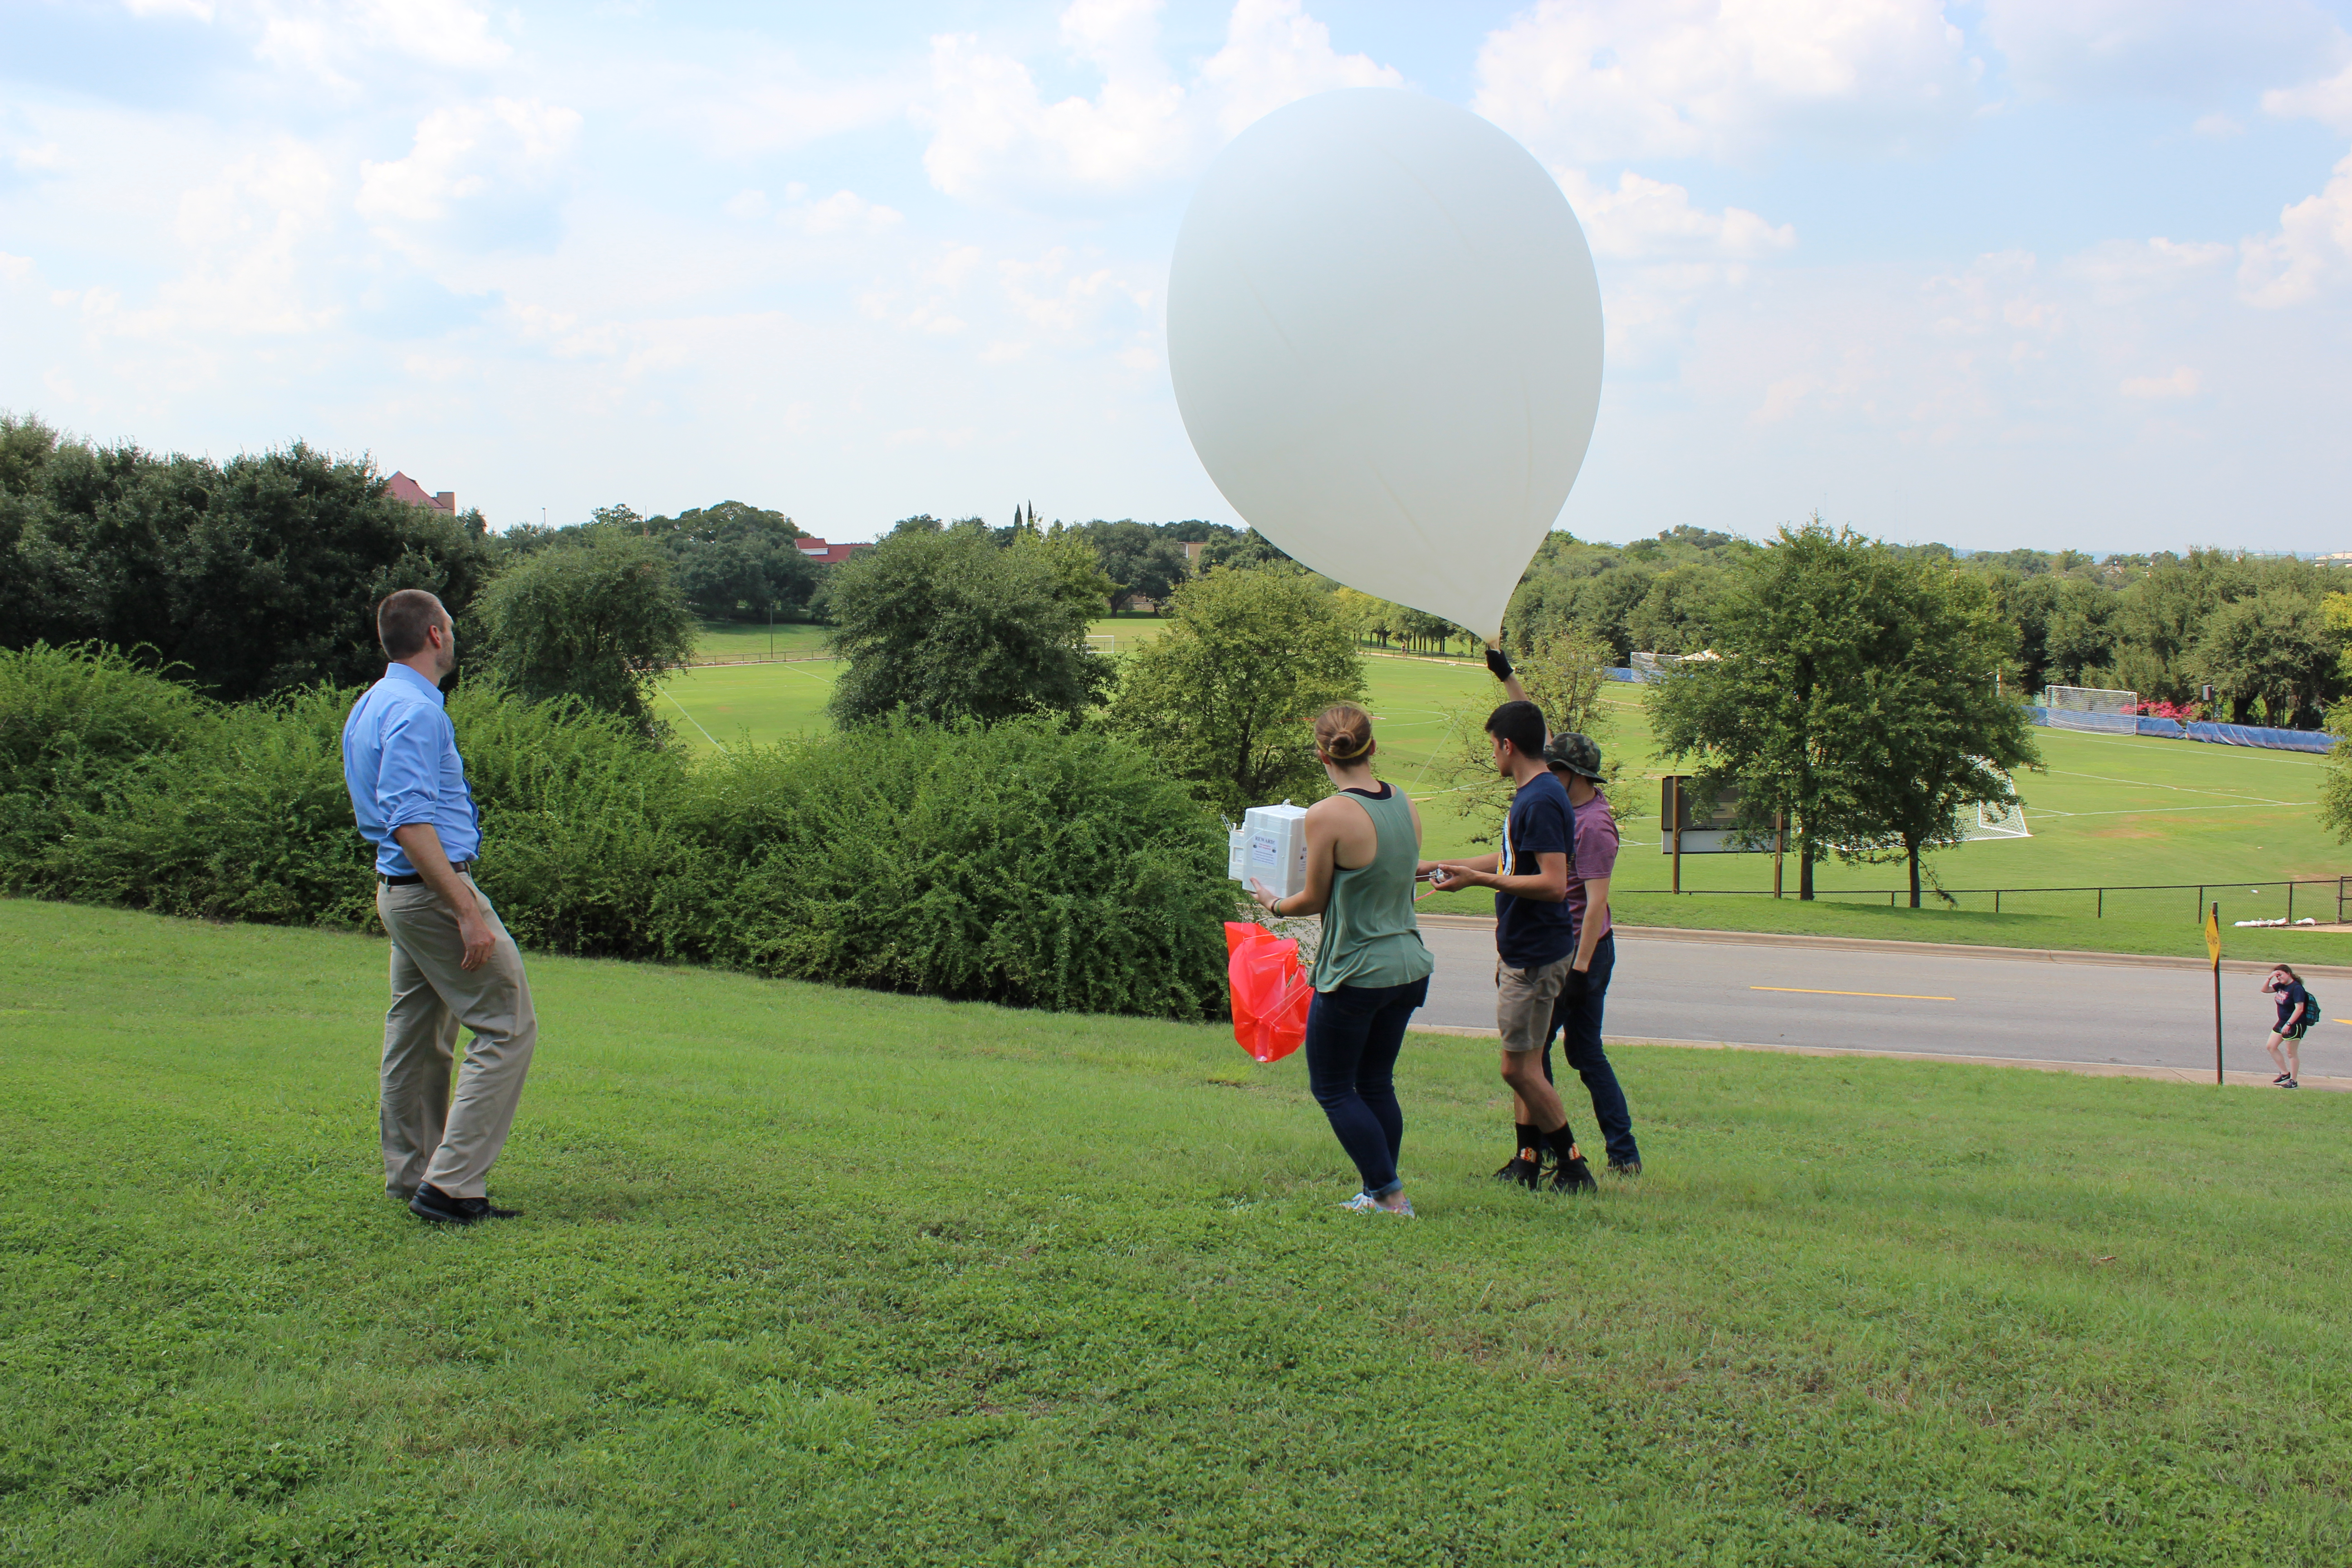 National Weather Service - Weather Balloon Launch - YouTube